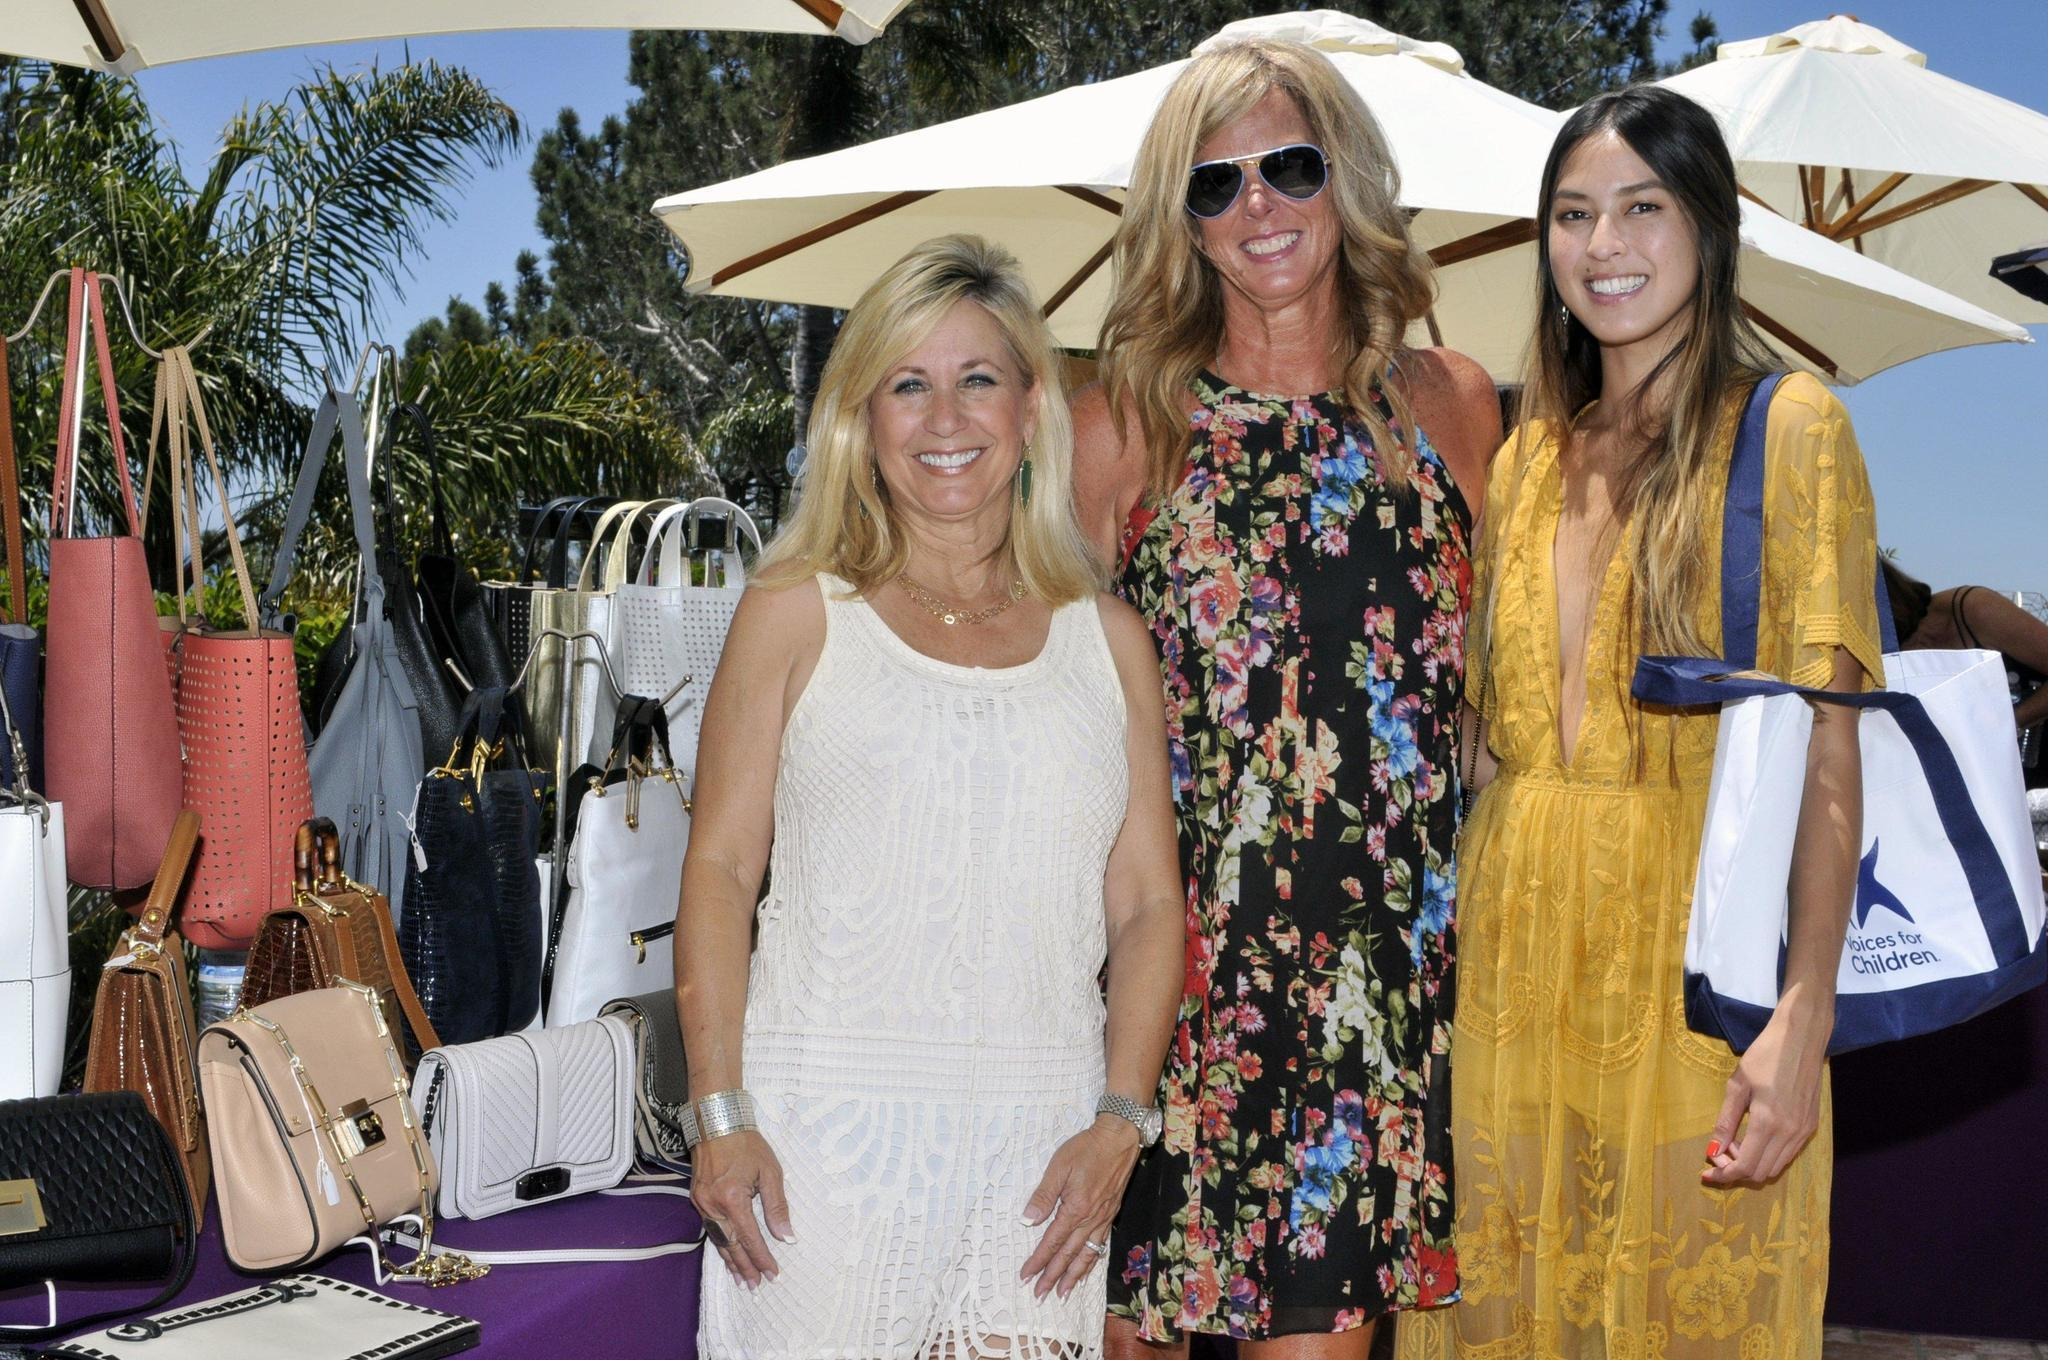 rancho sante fe women Rancho santa fe foundation, a north county san diego foundation, helps donors to maximize charitable giving thru donor advised funds, endowments & more.